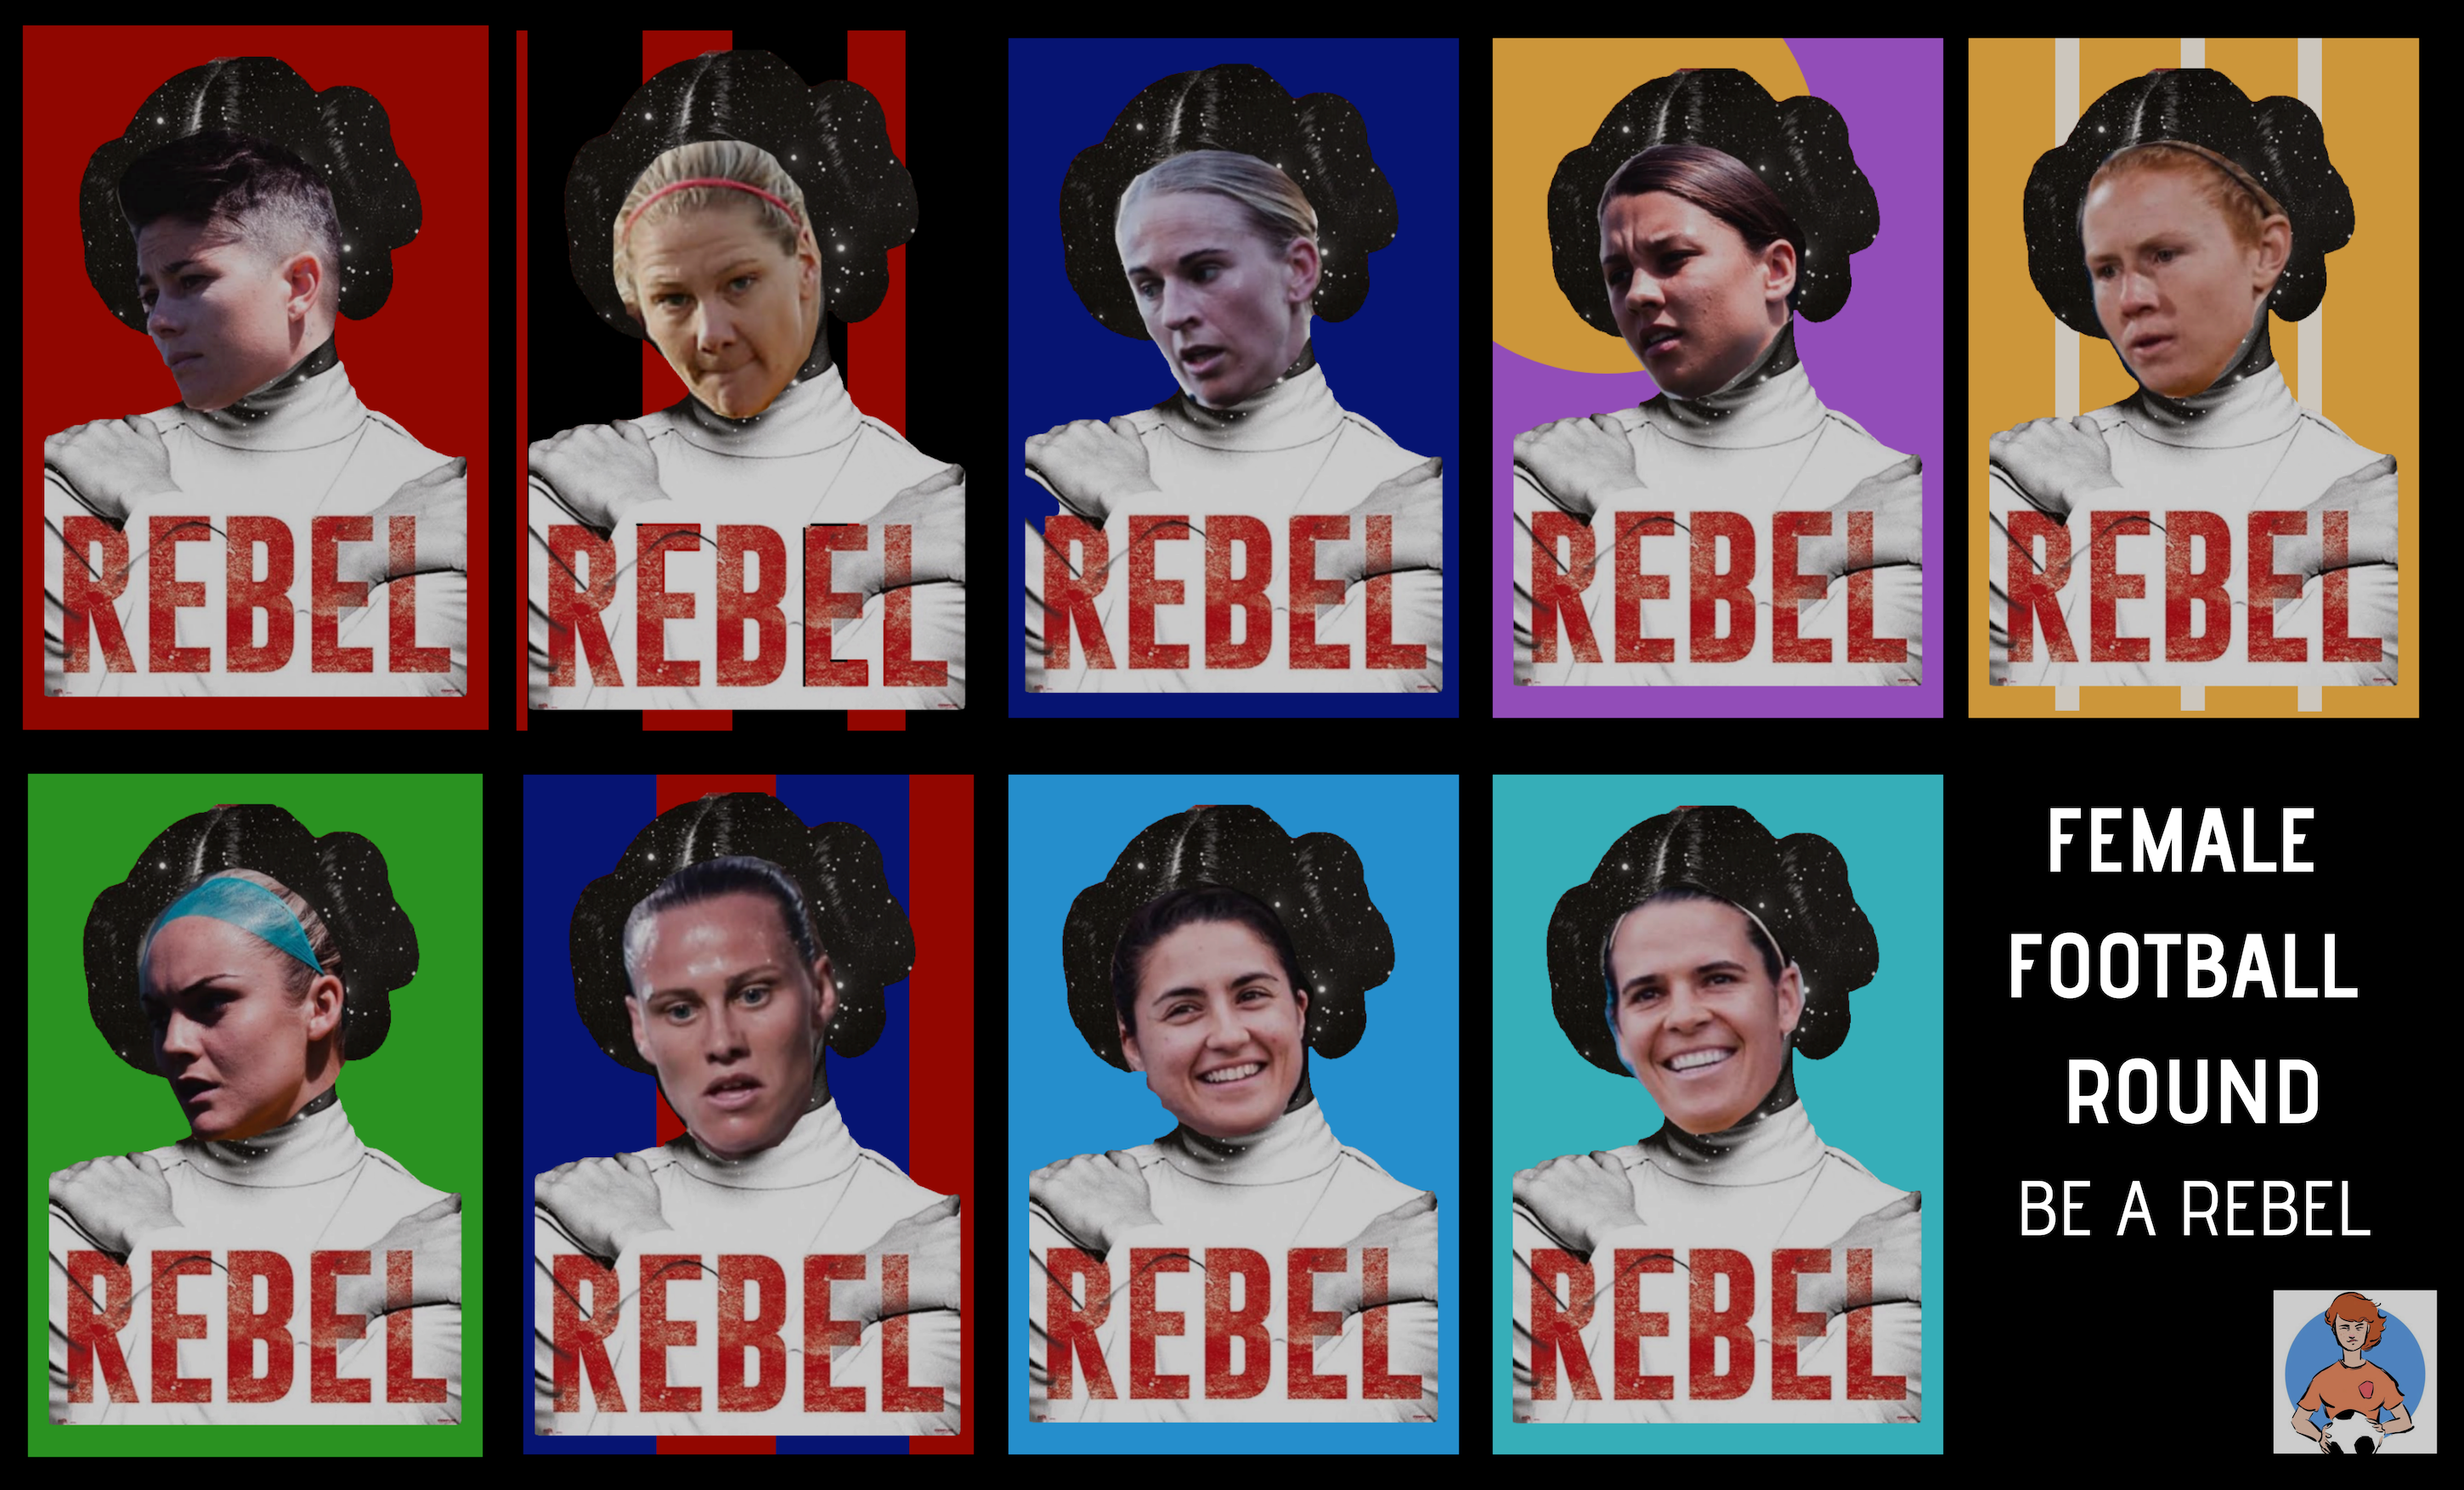 Rebel Female Football Week Banner